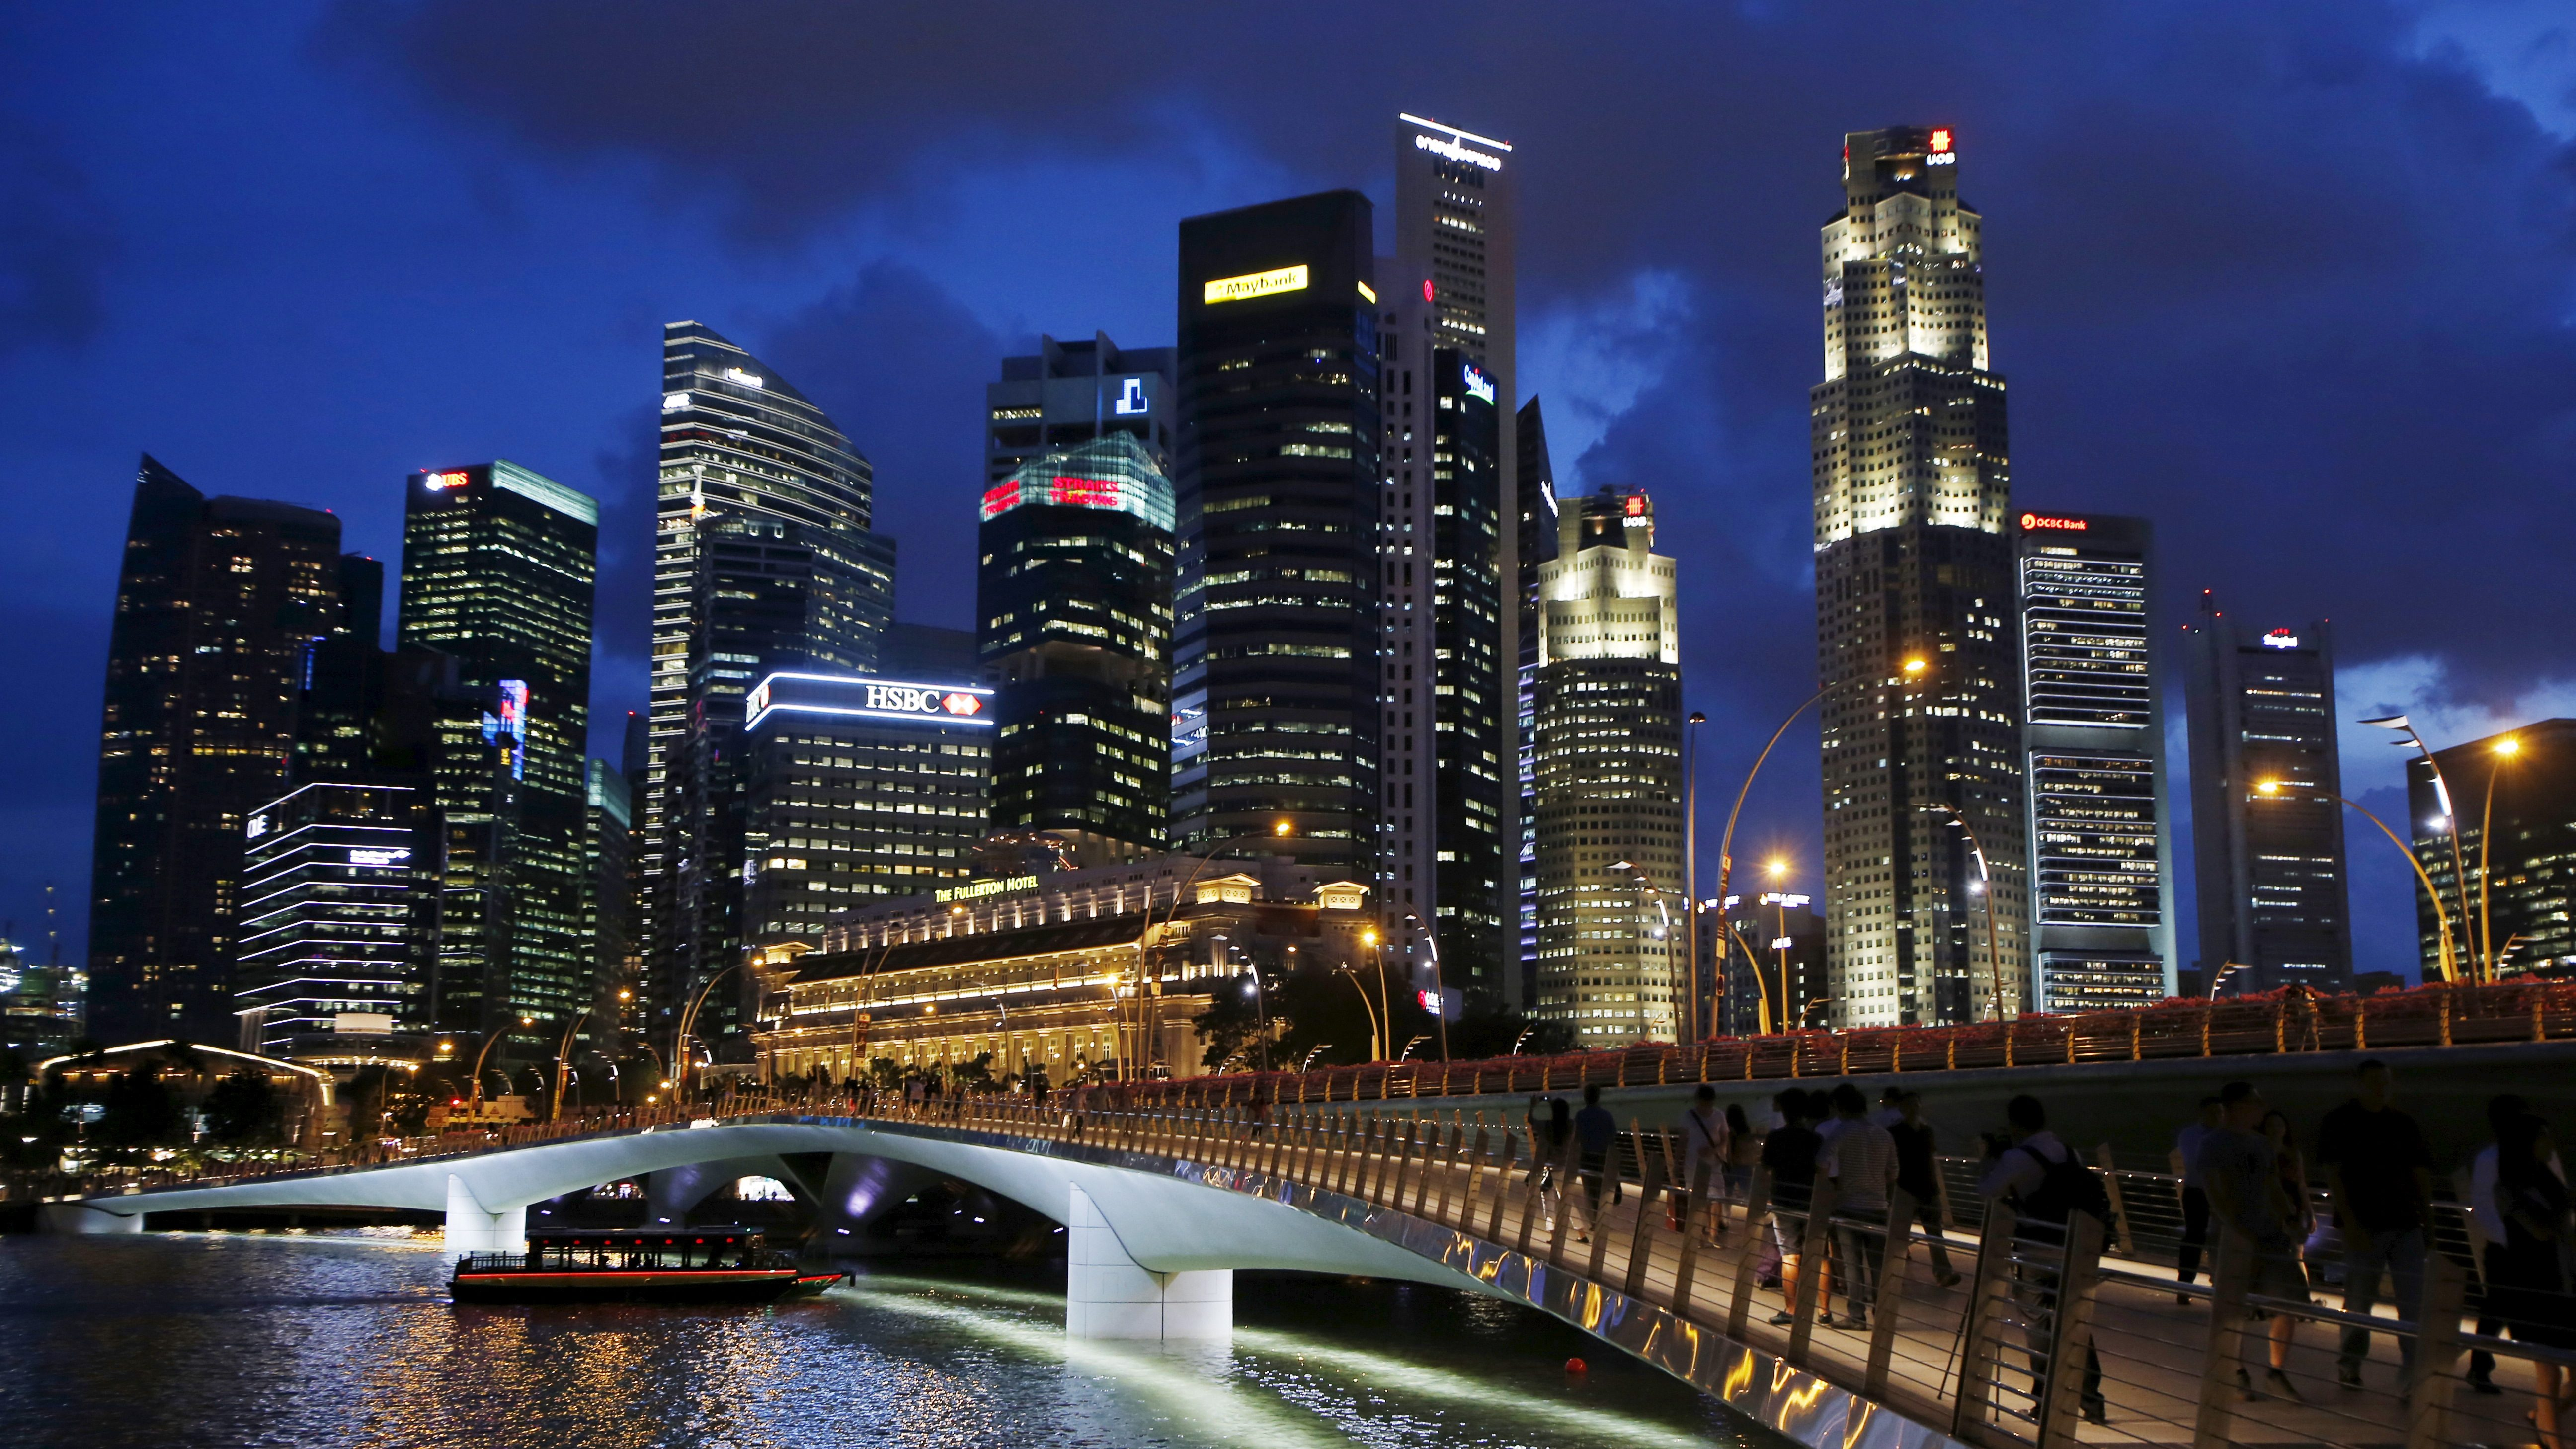 A view of the central business district in Singapore April 9, 2015. When Singapore celebrated its 50th birthday as an independent country in August, the city state bore little resemblance to the tiny island nation that was expelled from Malaysia in 1965. Its physical stature has swollen by 20 percent thanks to one of the world's most aggressive land reclamation drives.